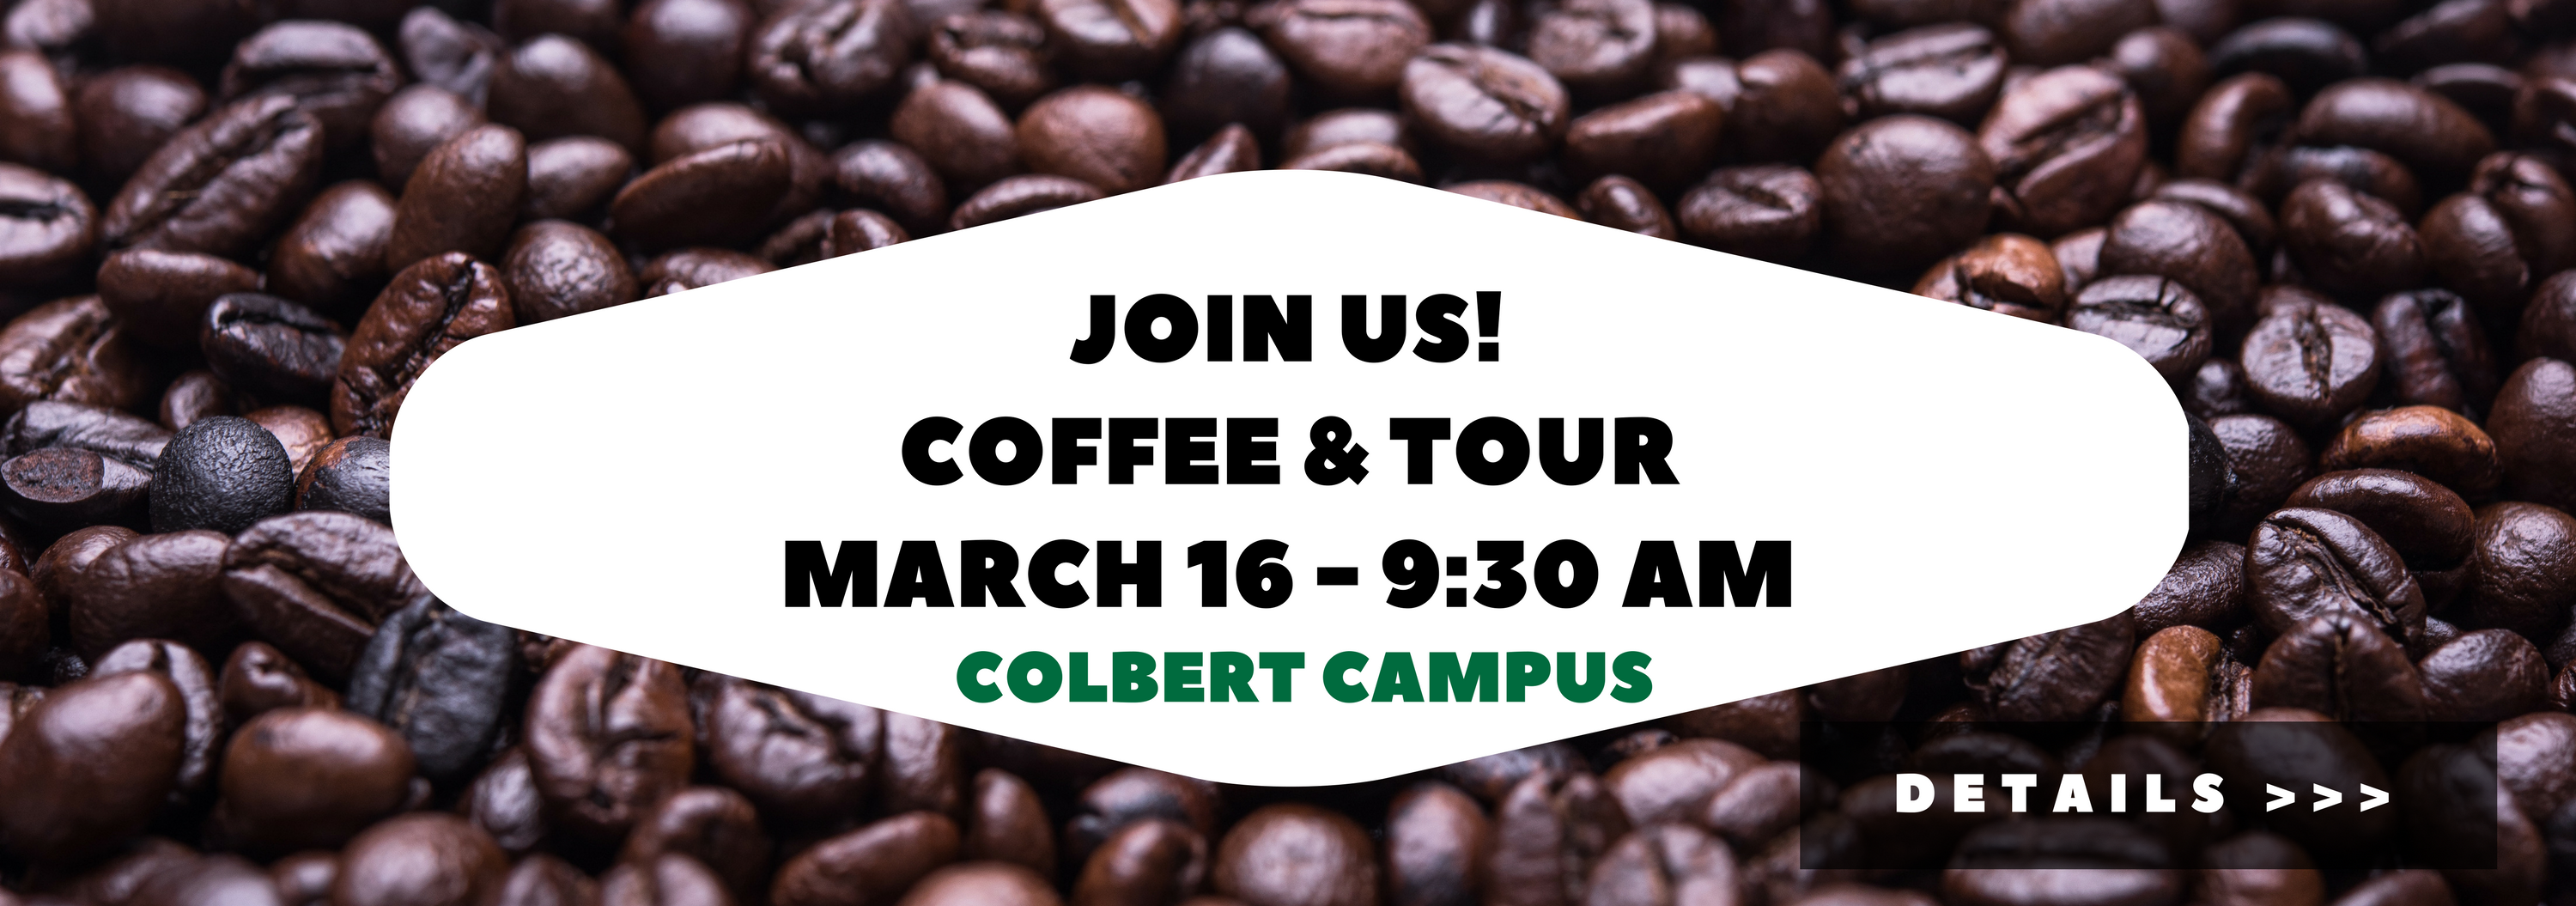 Coffee Tours Template – March 16